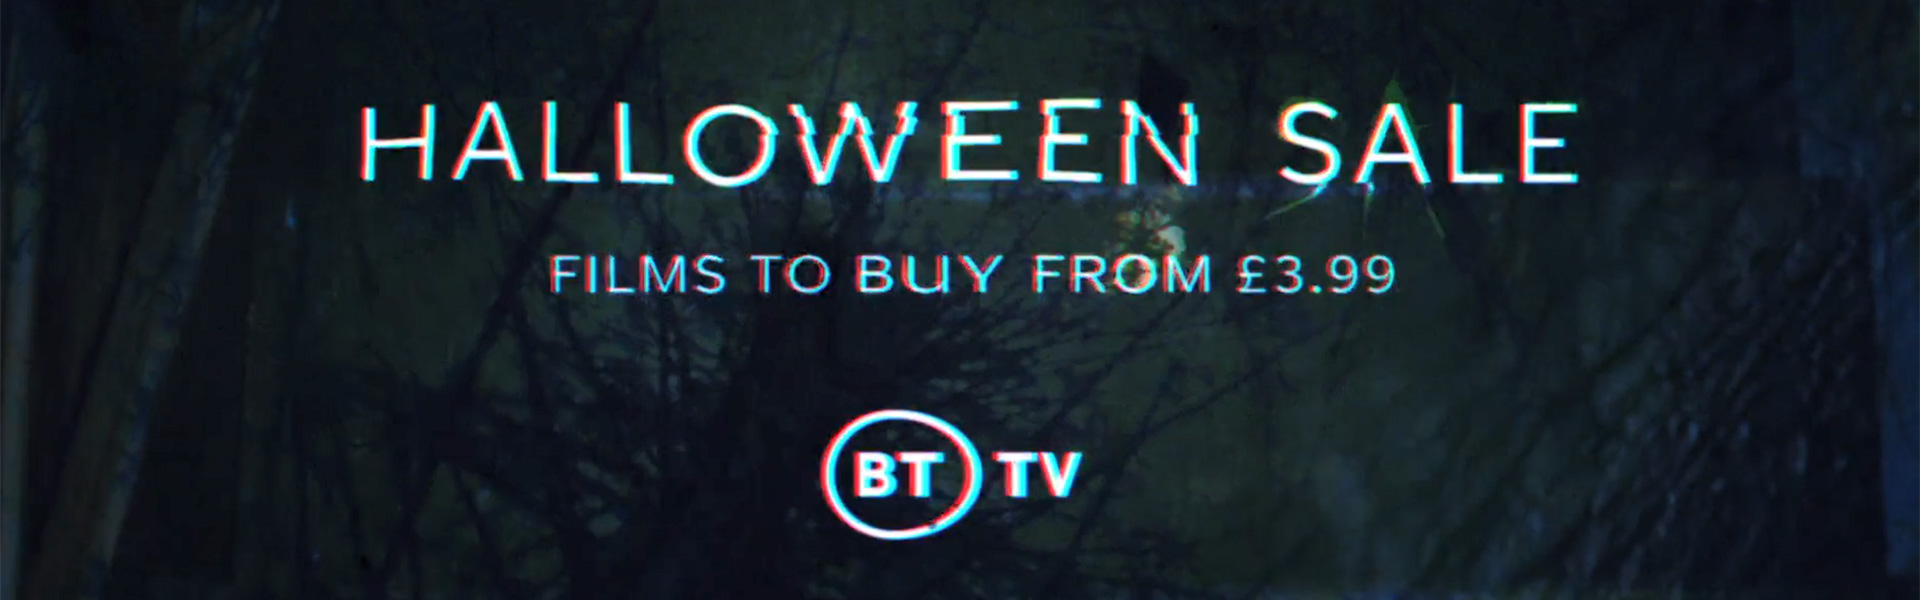 BT TV Halloween Sale - Films to buy from £3.99